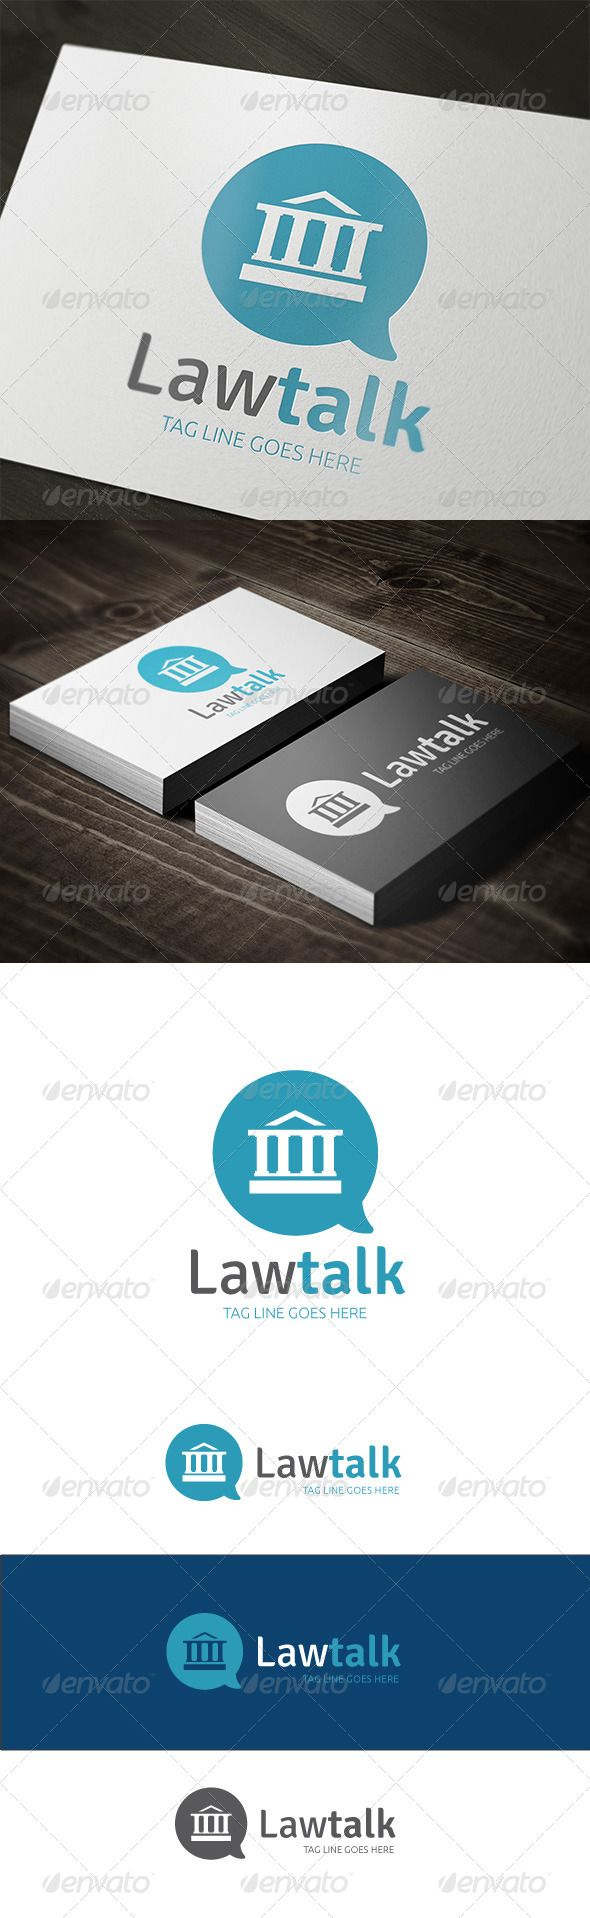 50 Best Law Firm Logo Template Images On Pinterest Logo Templates